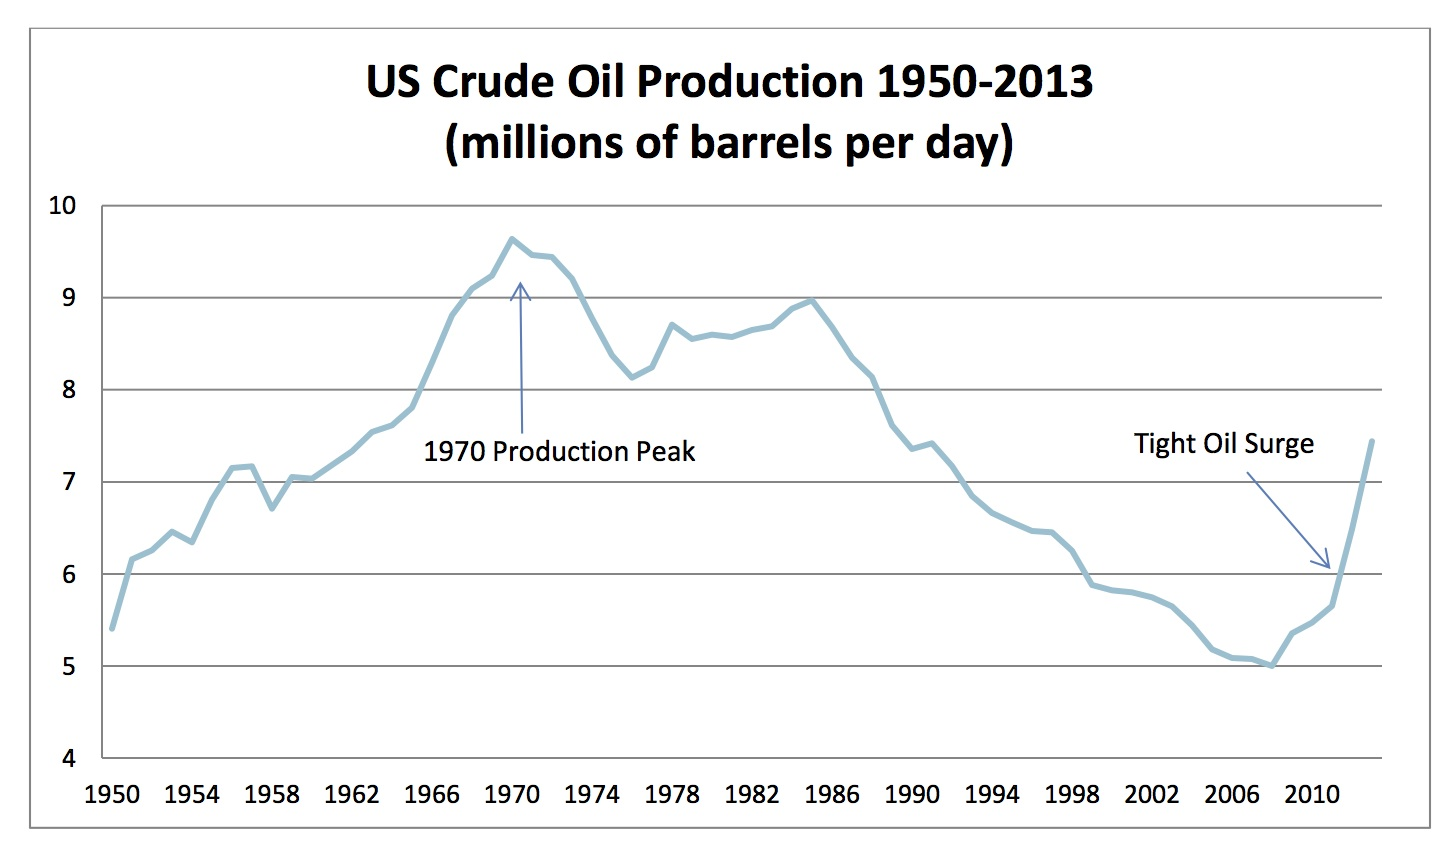 US Crude Oil Production 1950-2013